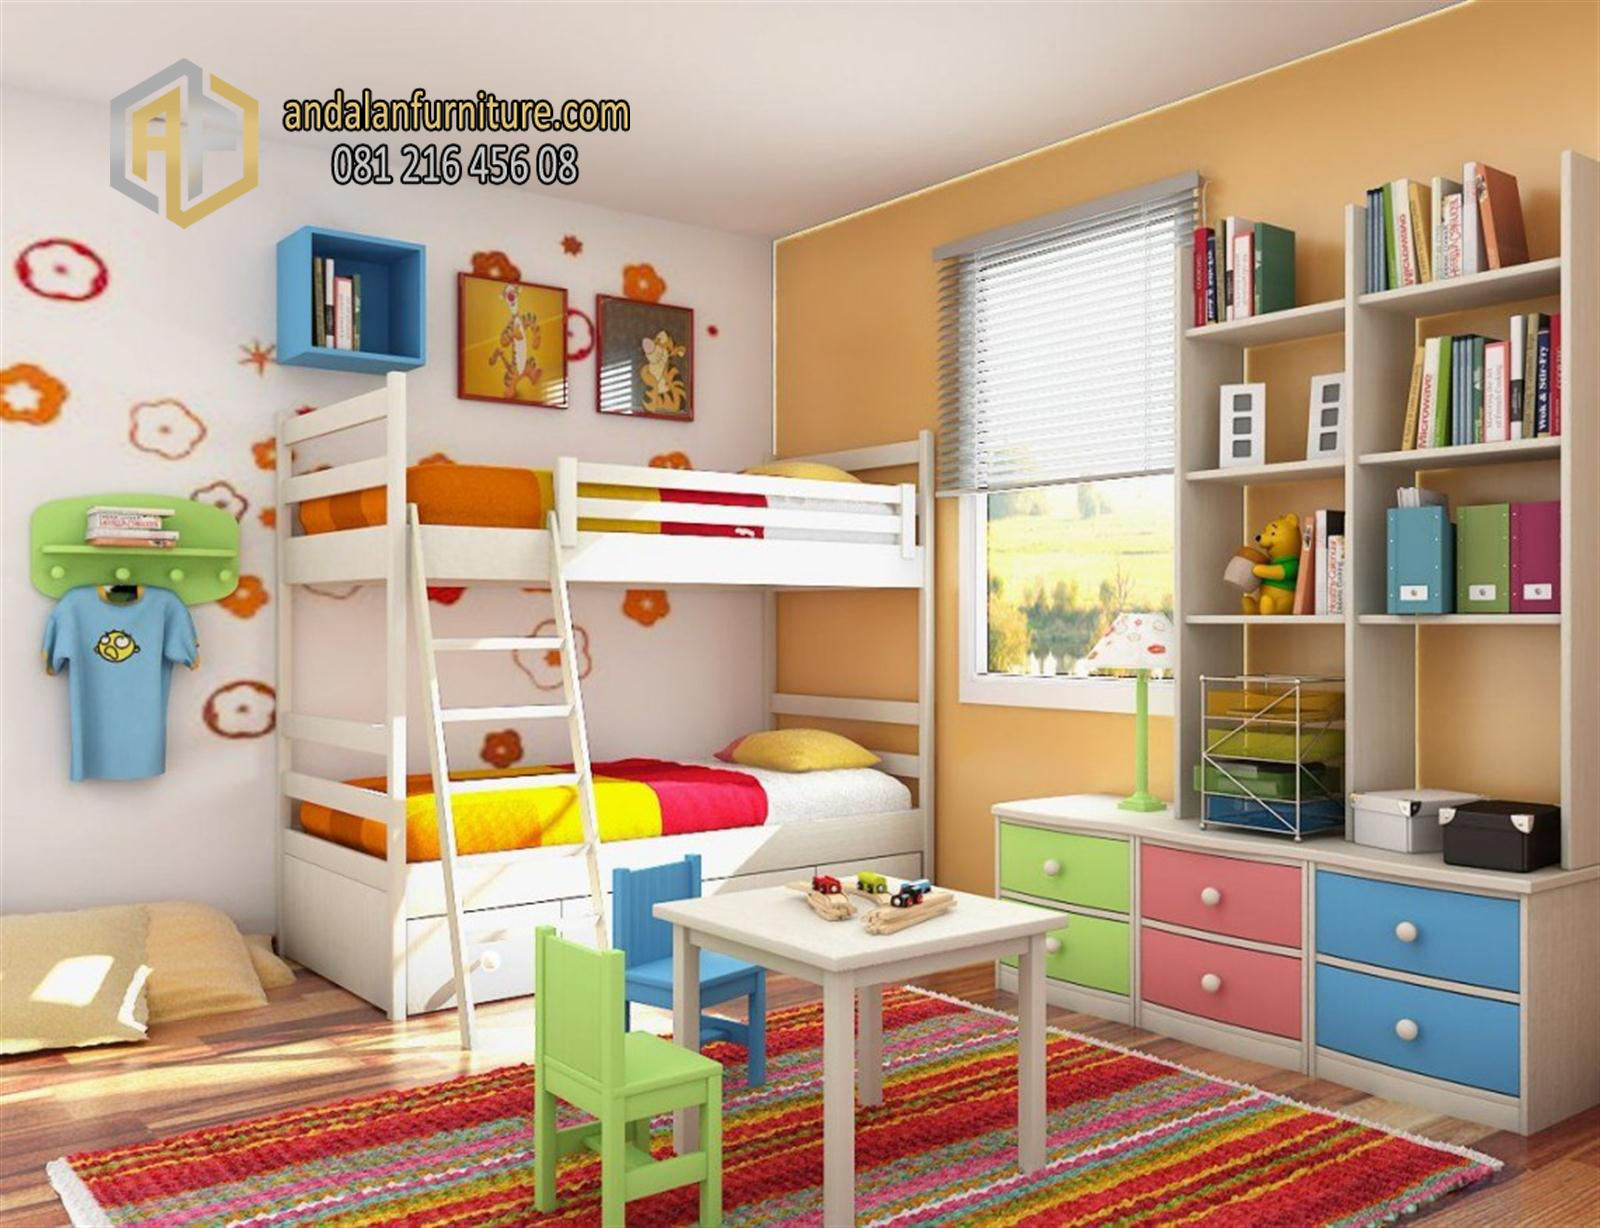 colorful bed room decor for kids